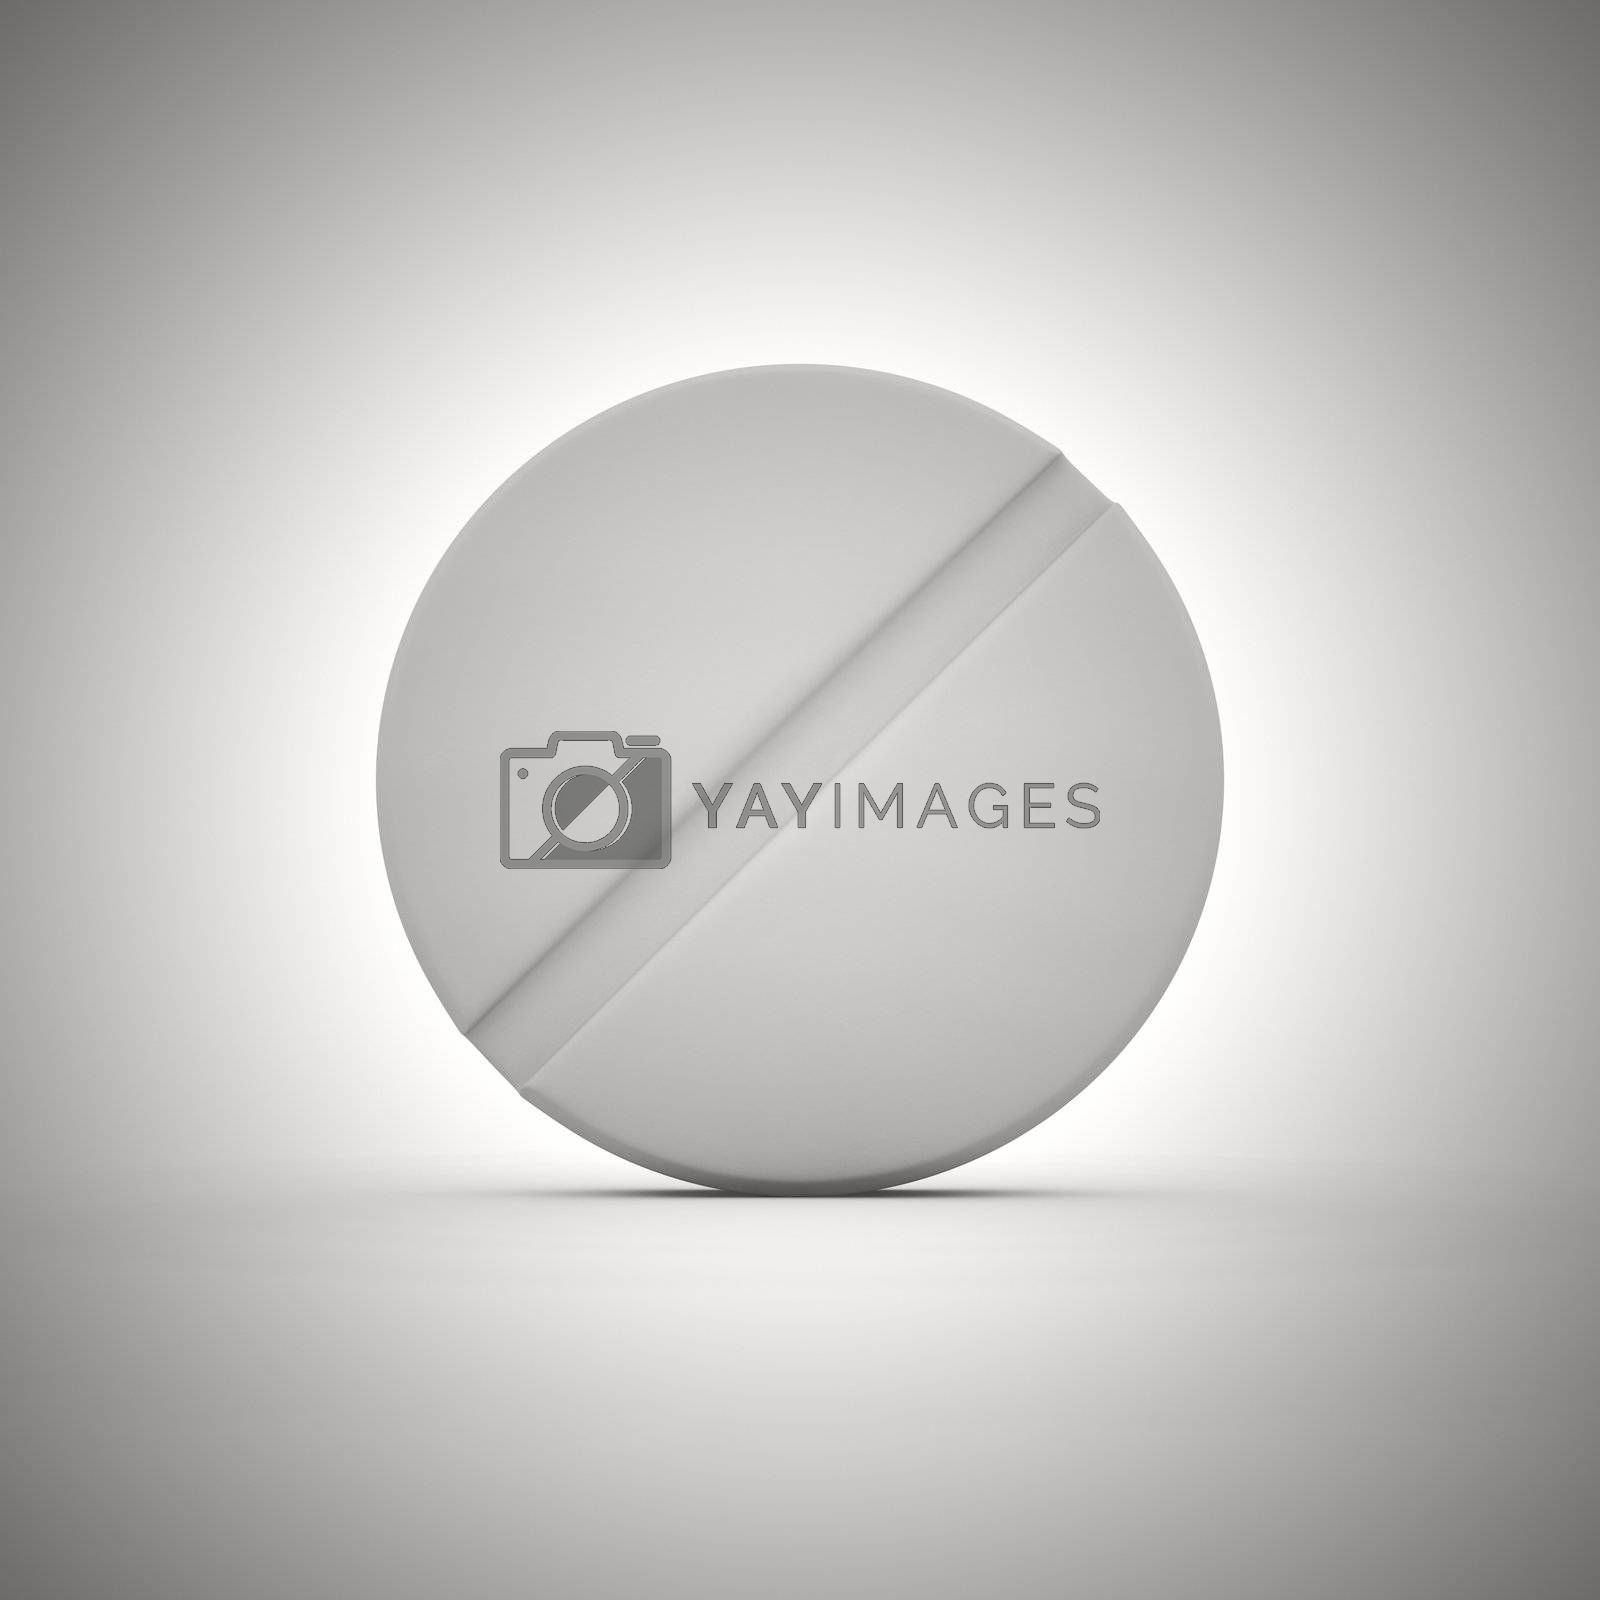 Big white tablet of round shape